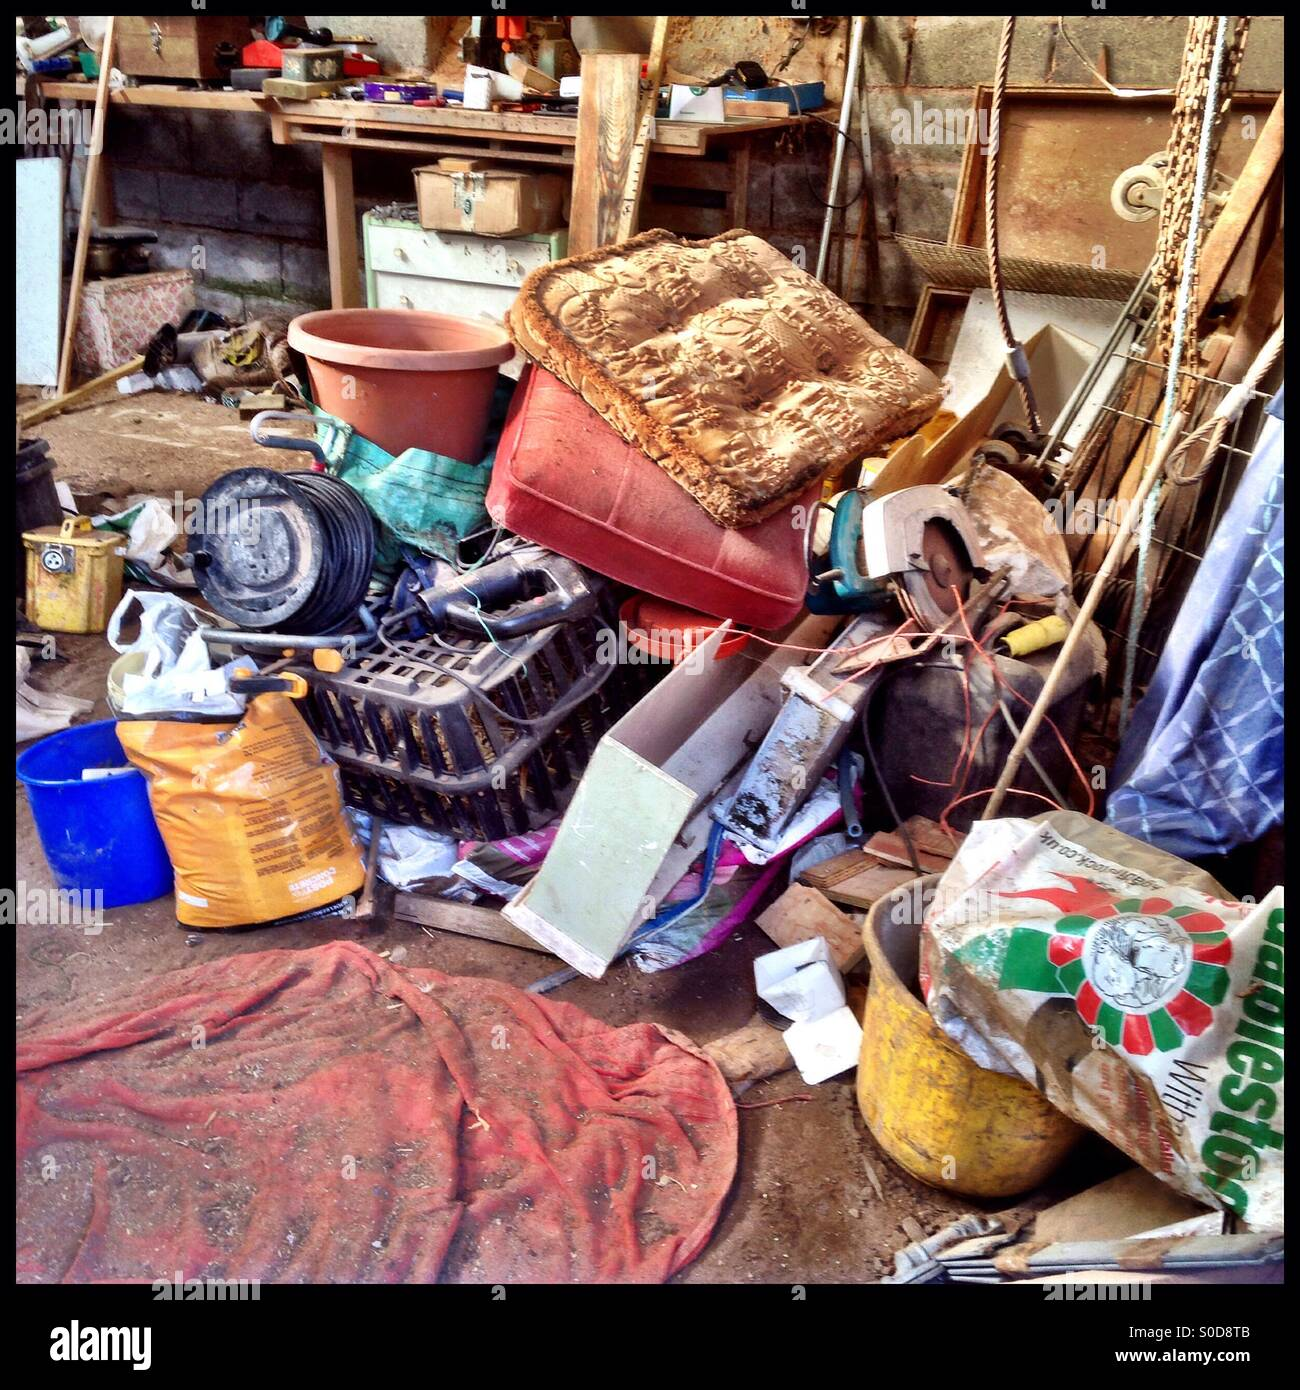 Pile of junk in large shed - Stock Image